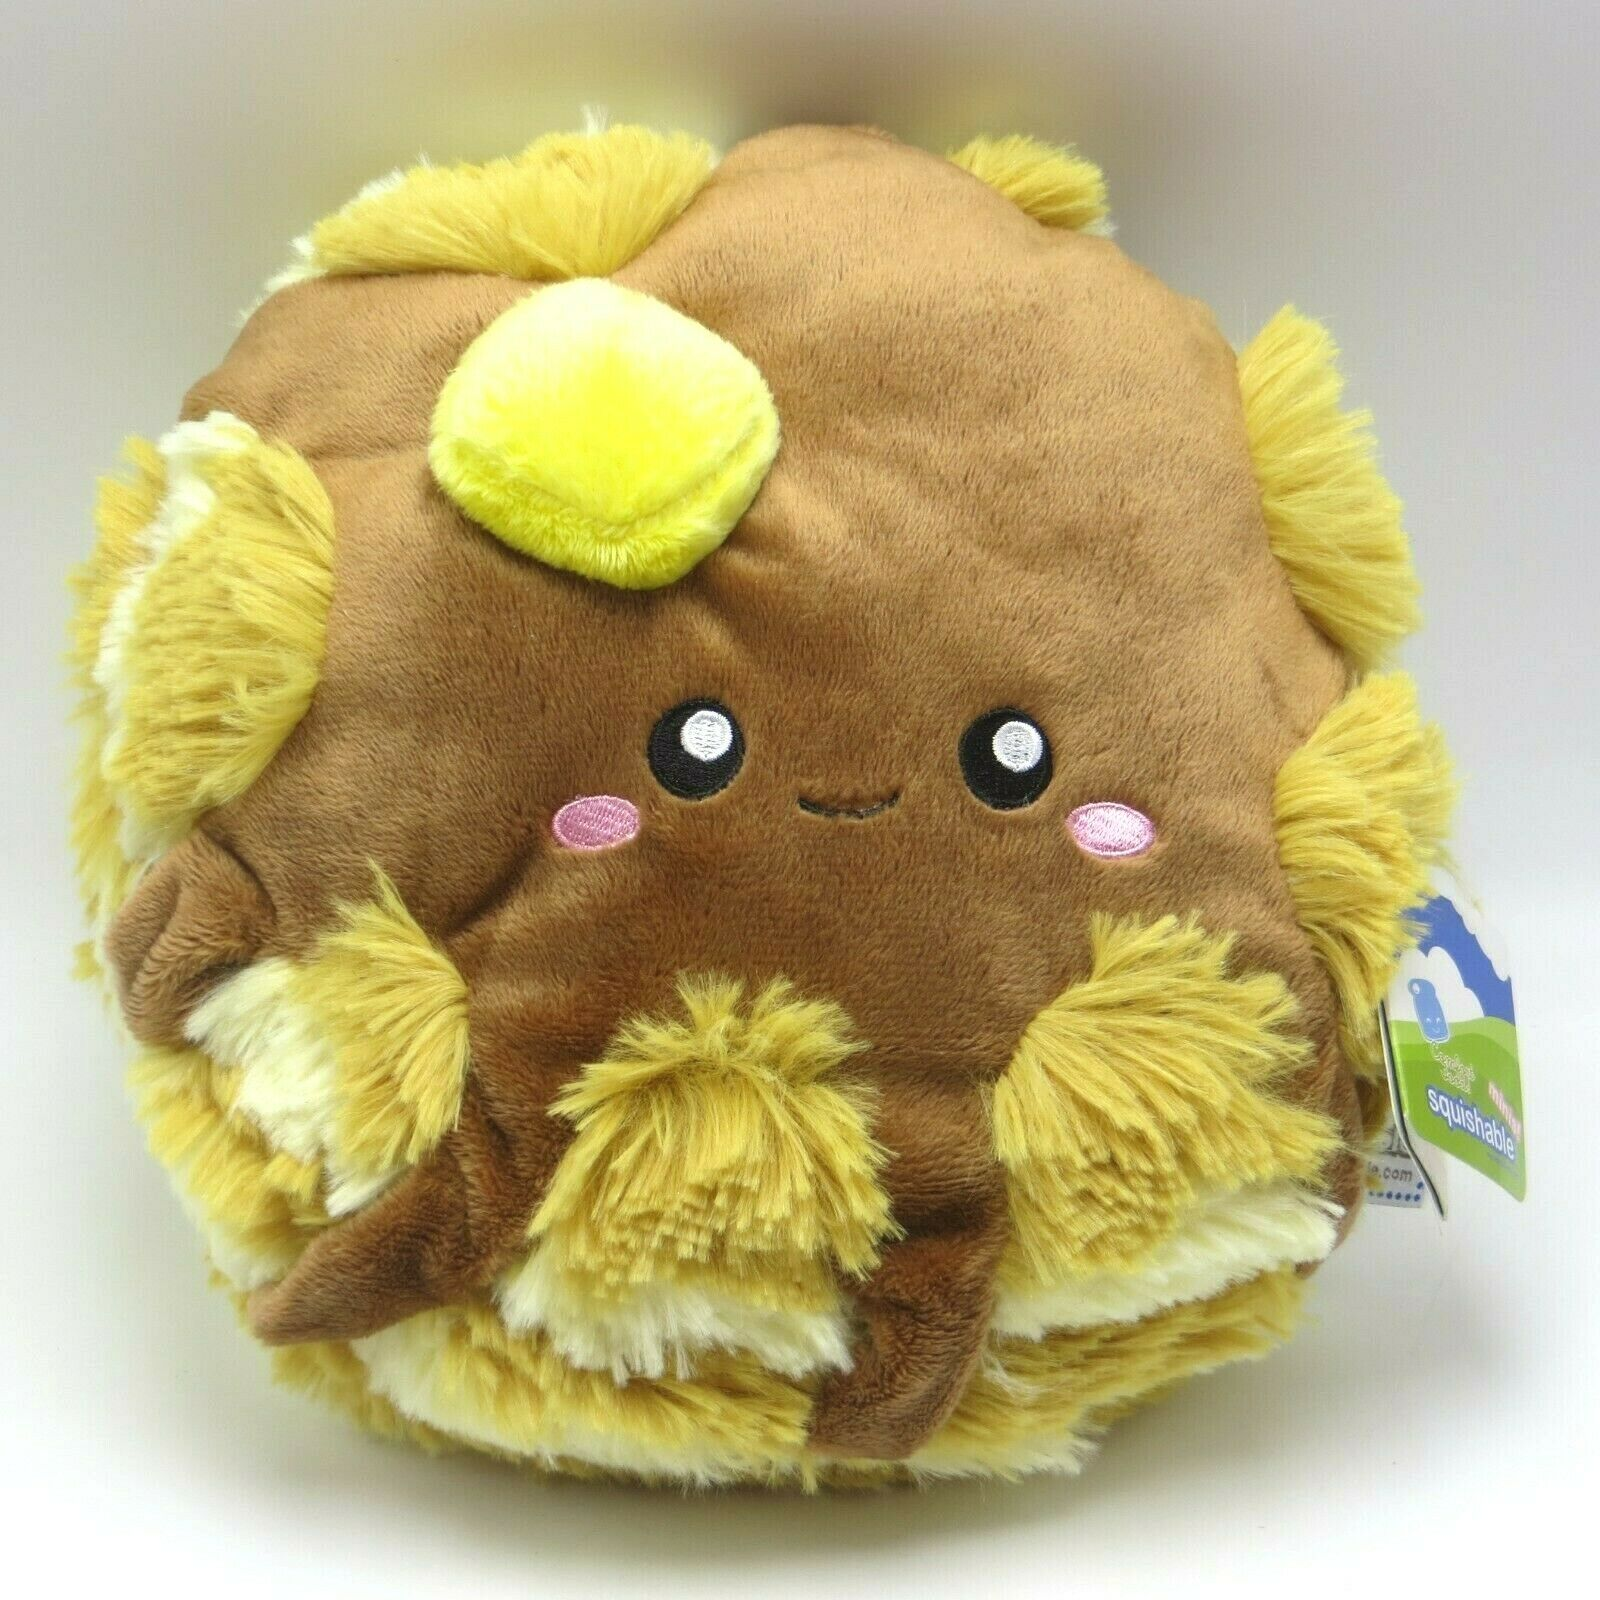 Squishable Minis Pancakes Plush Comfort Food 9 Stuffed Butter Syrup Flapjack For Sale Online #it will be much appreciated #bettas #betta community #thank you all. squishable minis pancakes plush comfort food 9 stuffed butter syrup flapjack